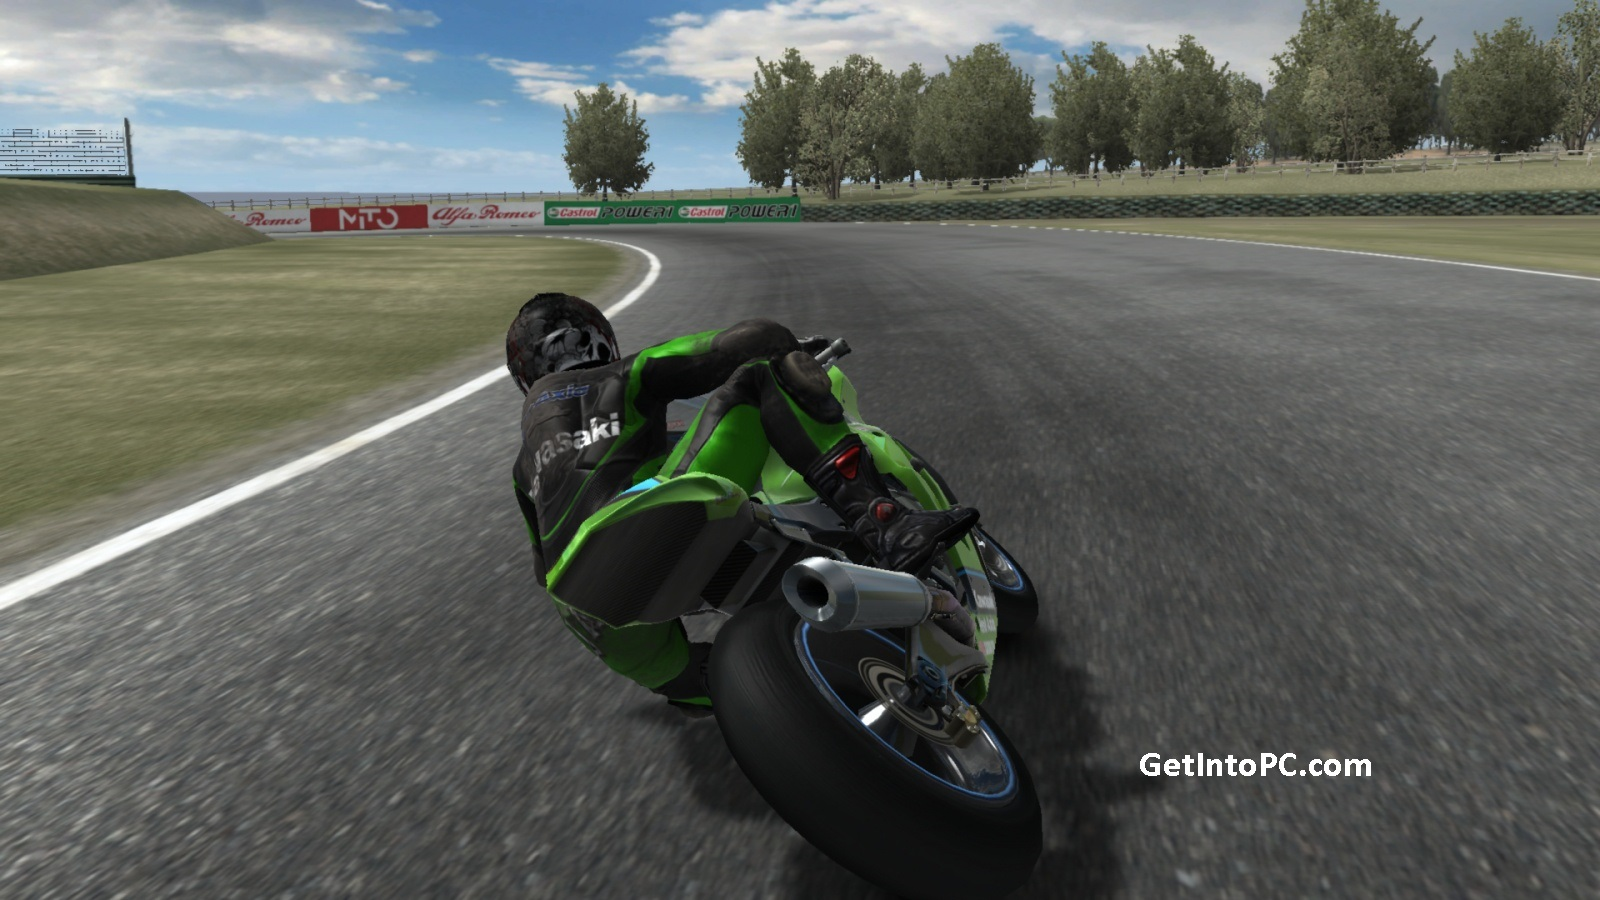 Bike Game Download Free This Bike racing game has